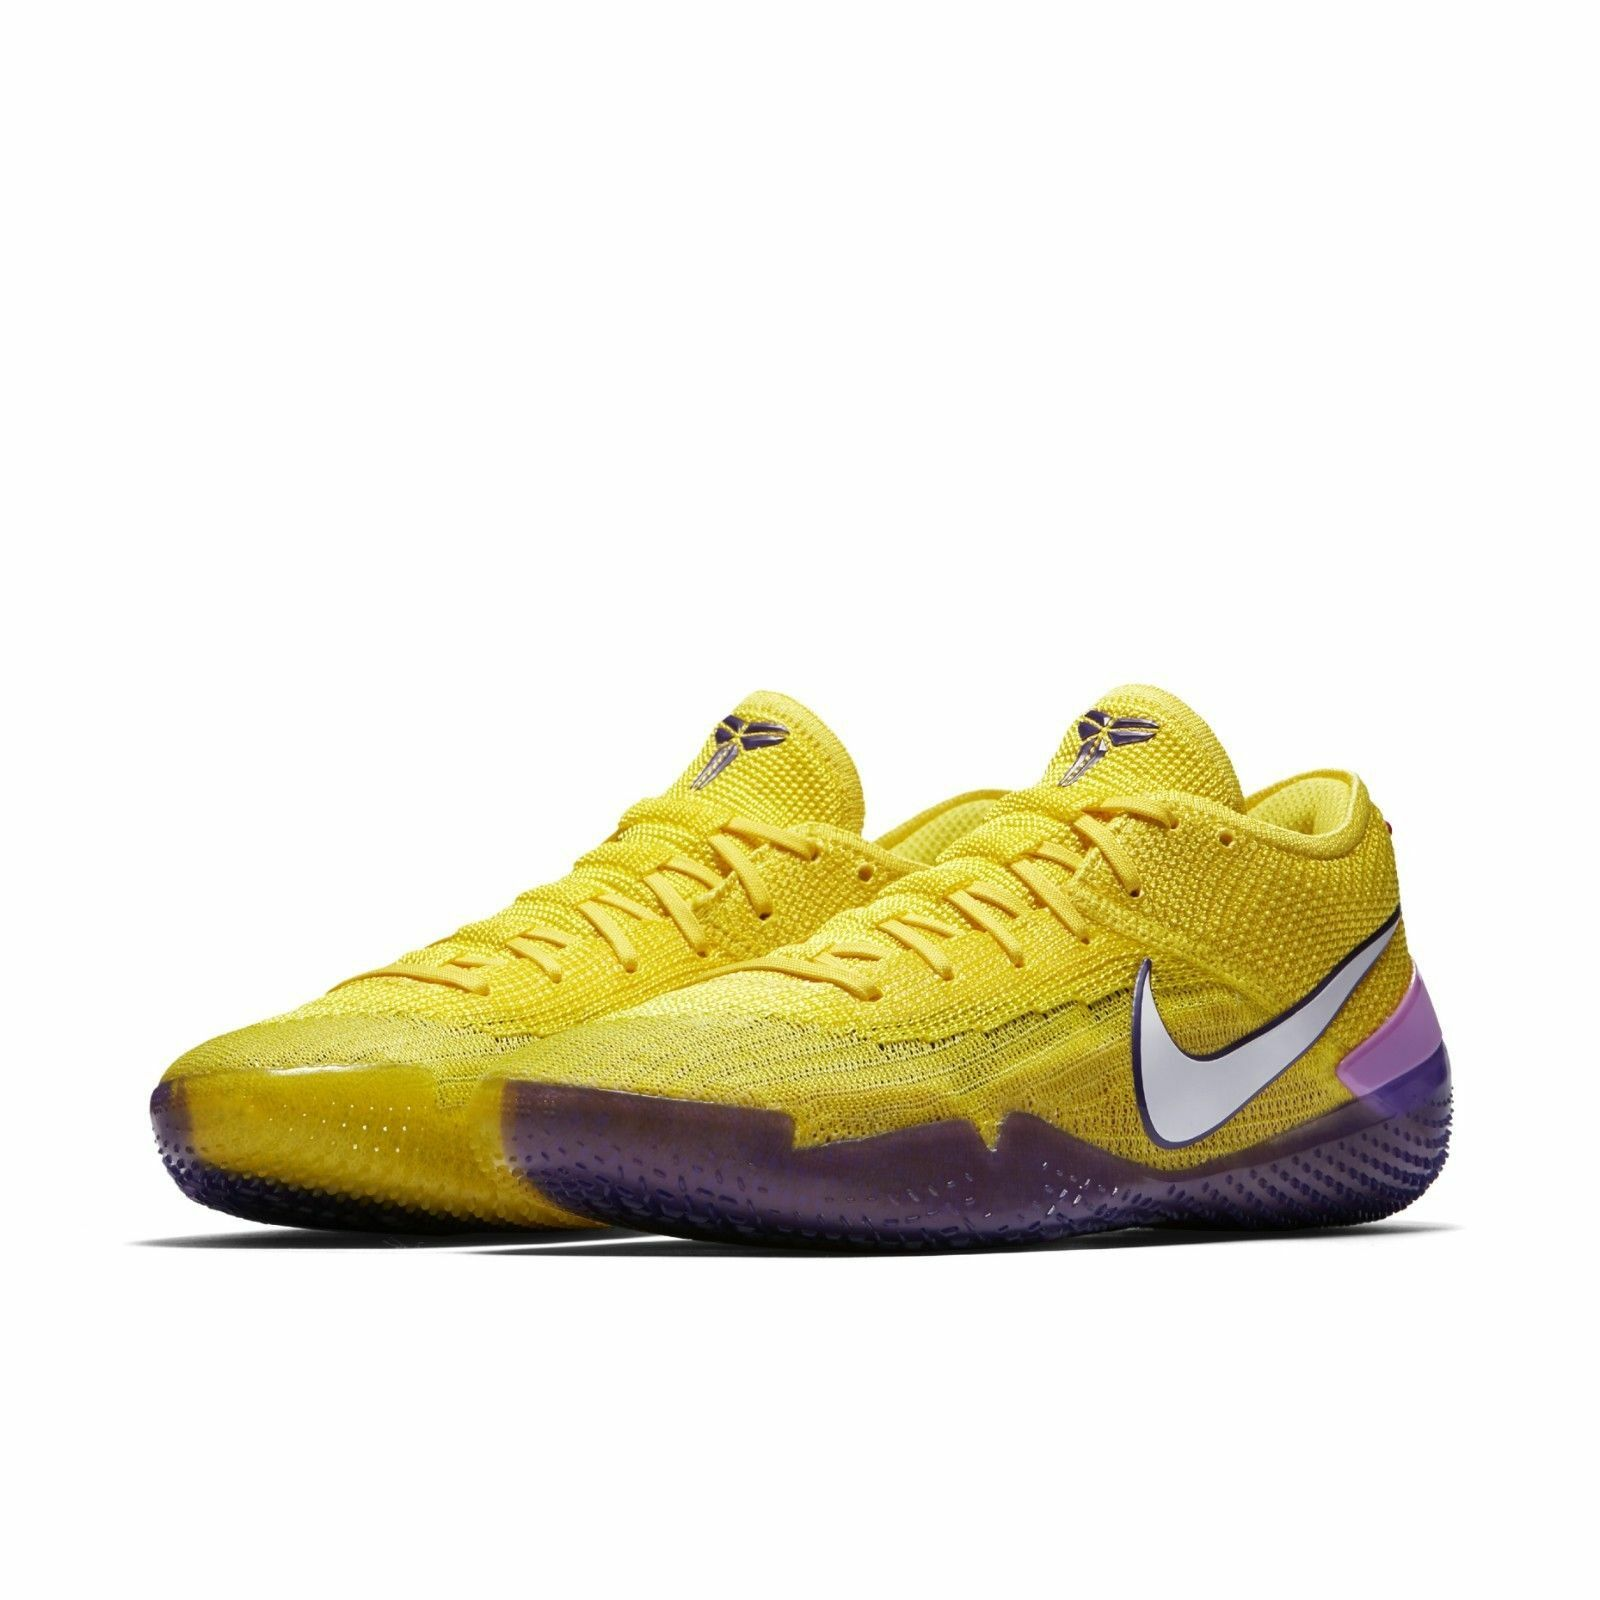 Nike homme Kobe AD NXT 360 Bryant Yelfaible Strike  Violet  Mamba Lakers AQ1087-700